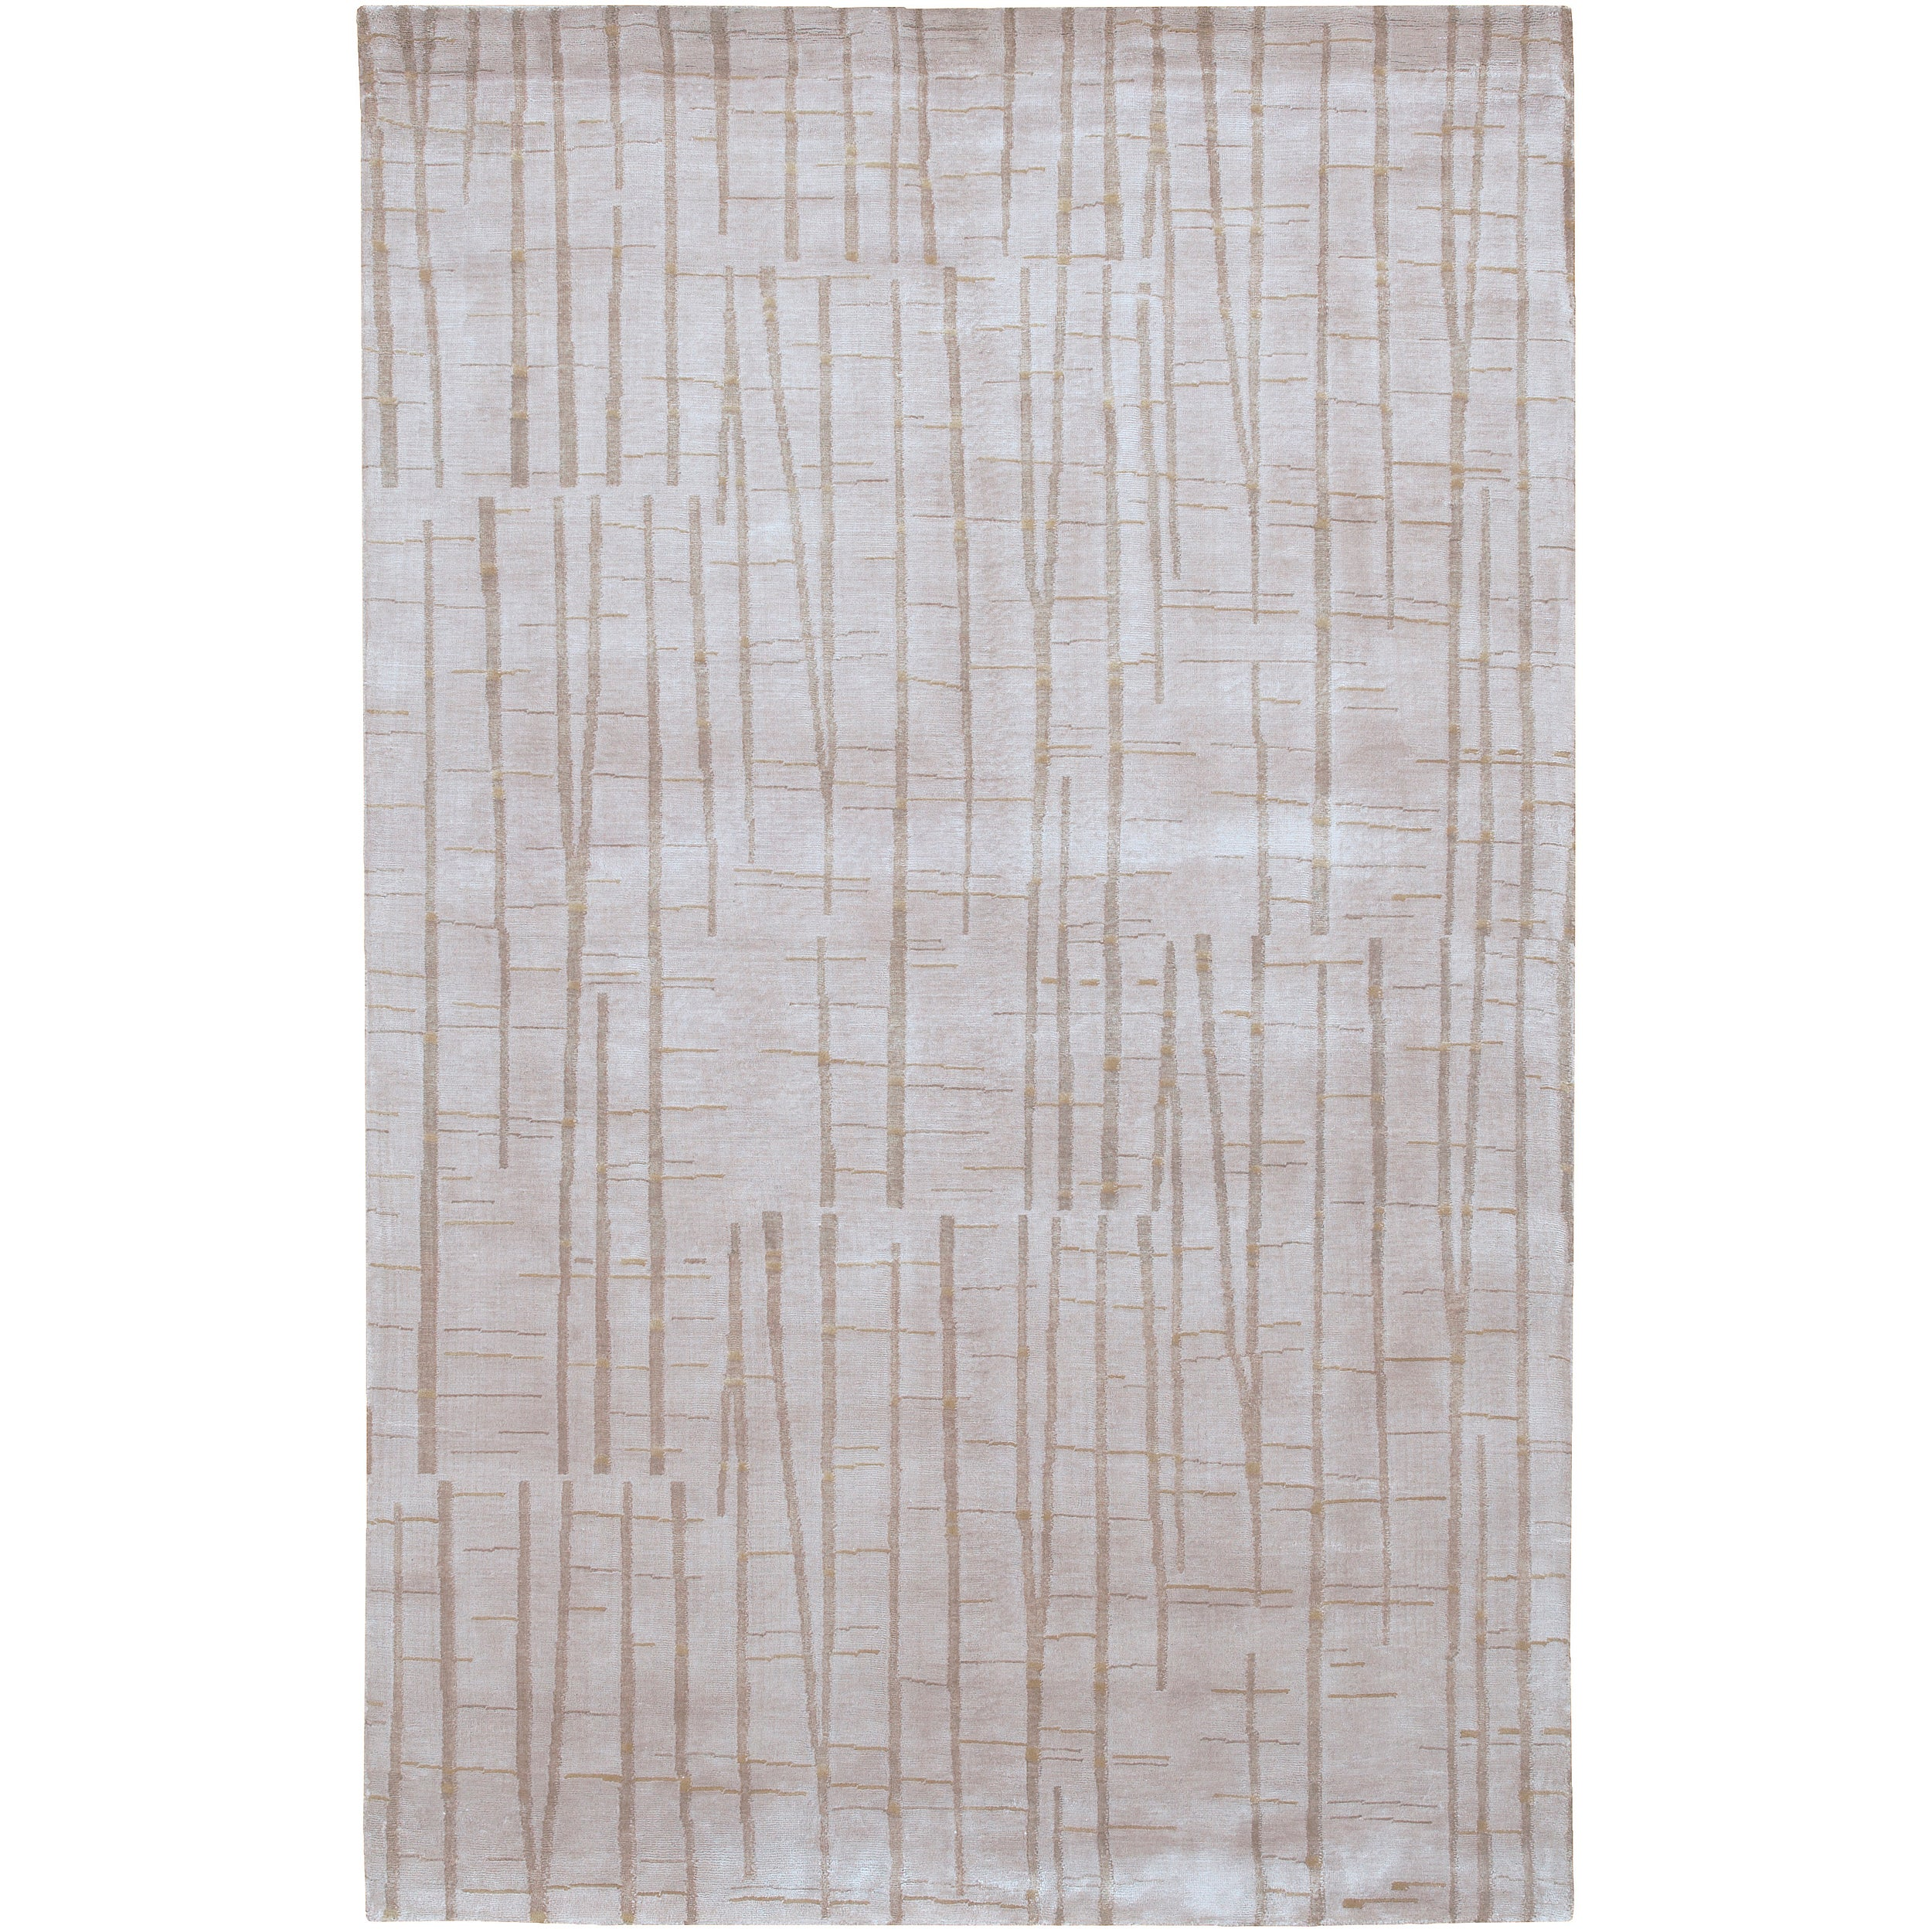 Hand-knotted Kendal Abstract Design Wool Area Rug (8' x 11')